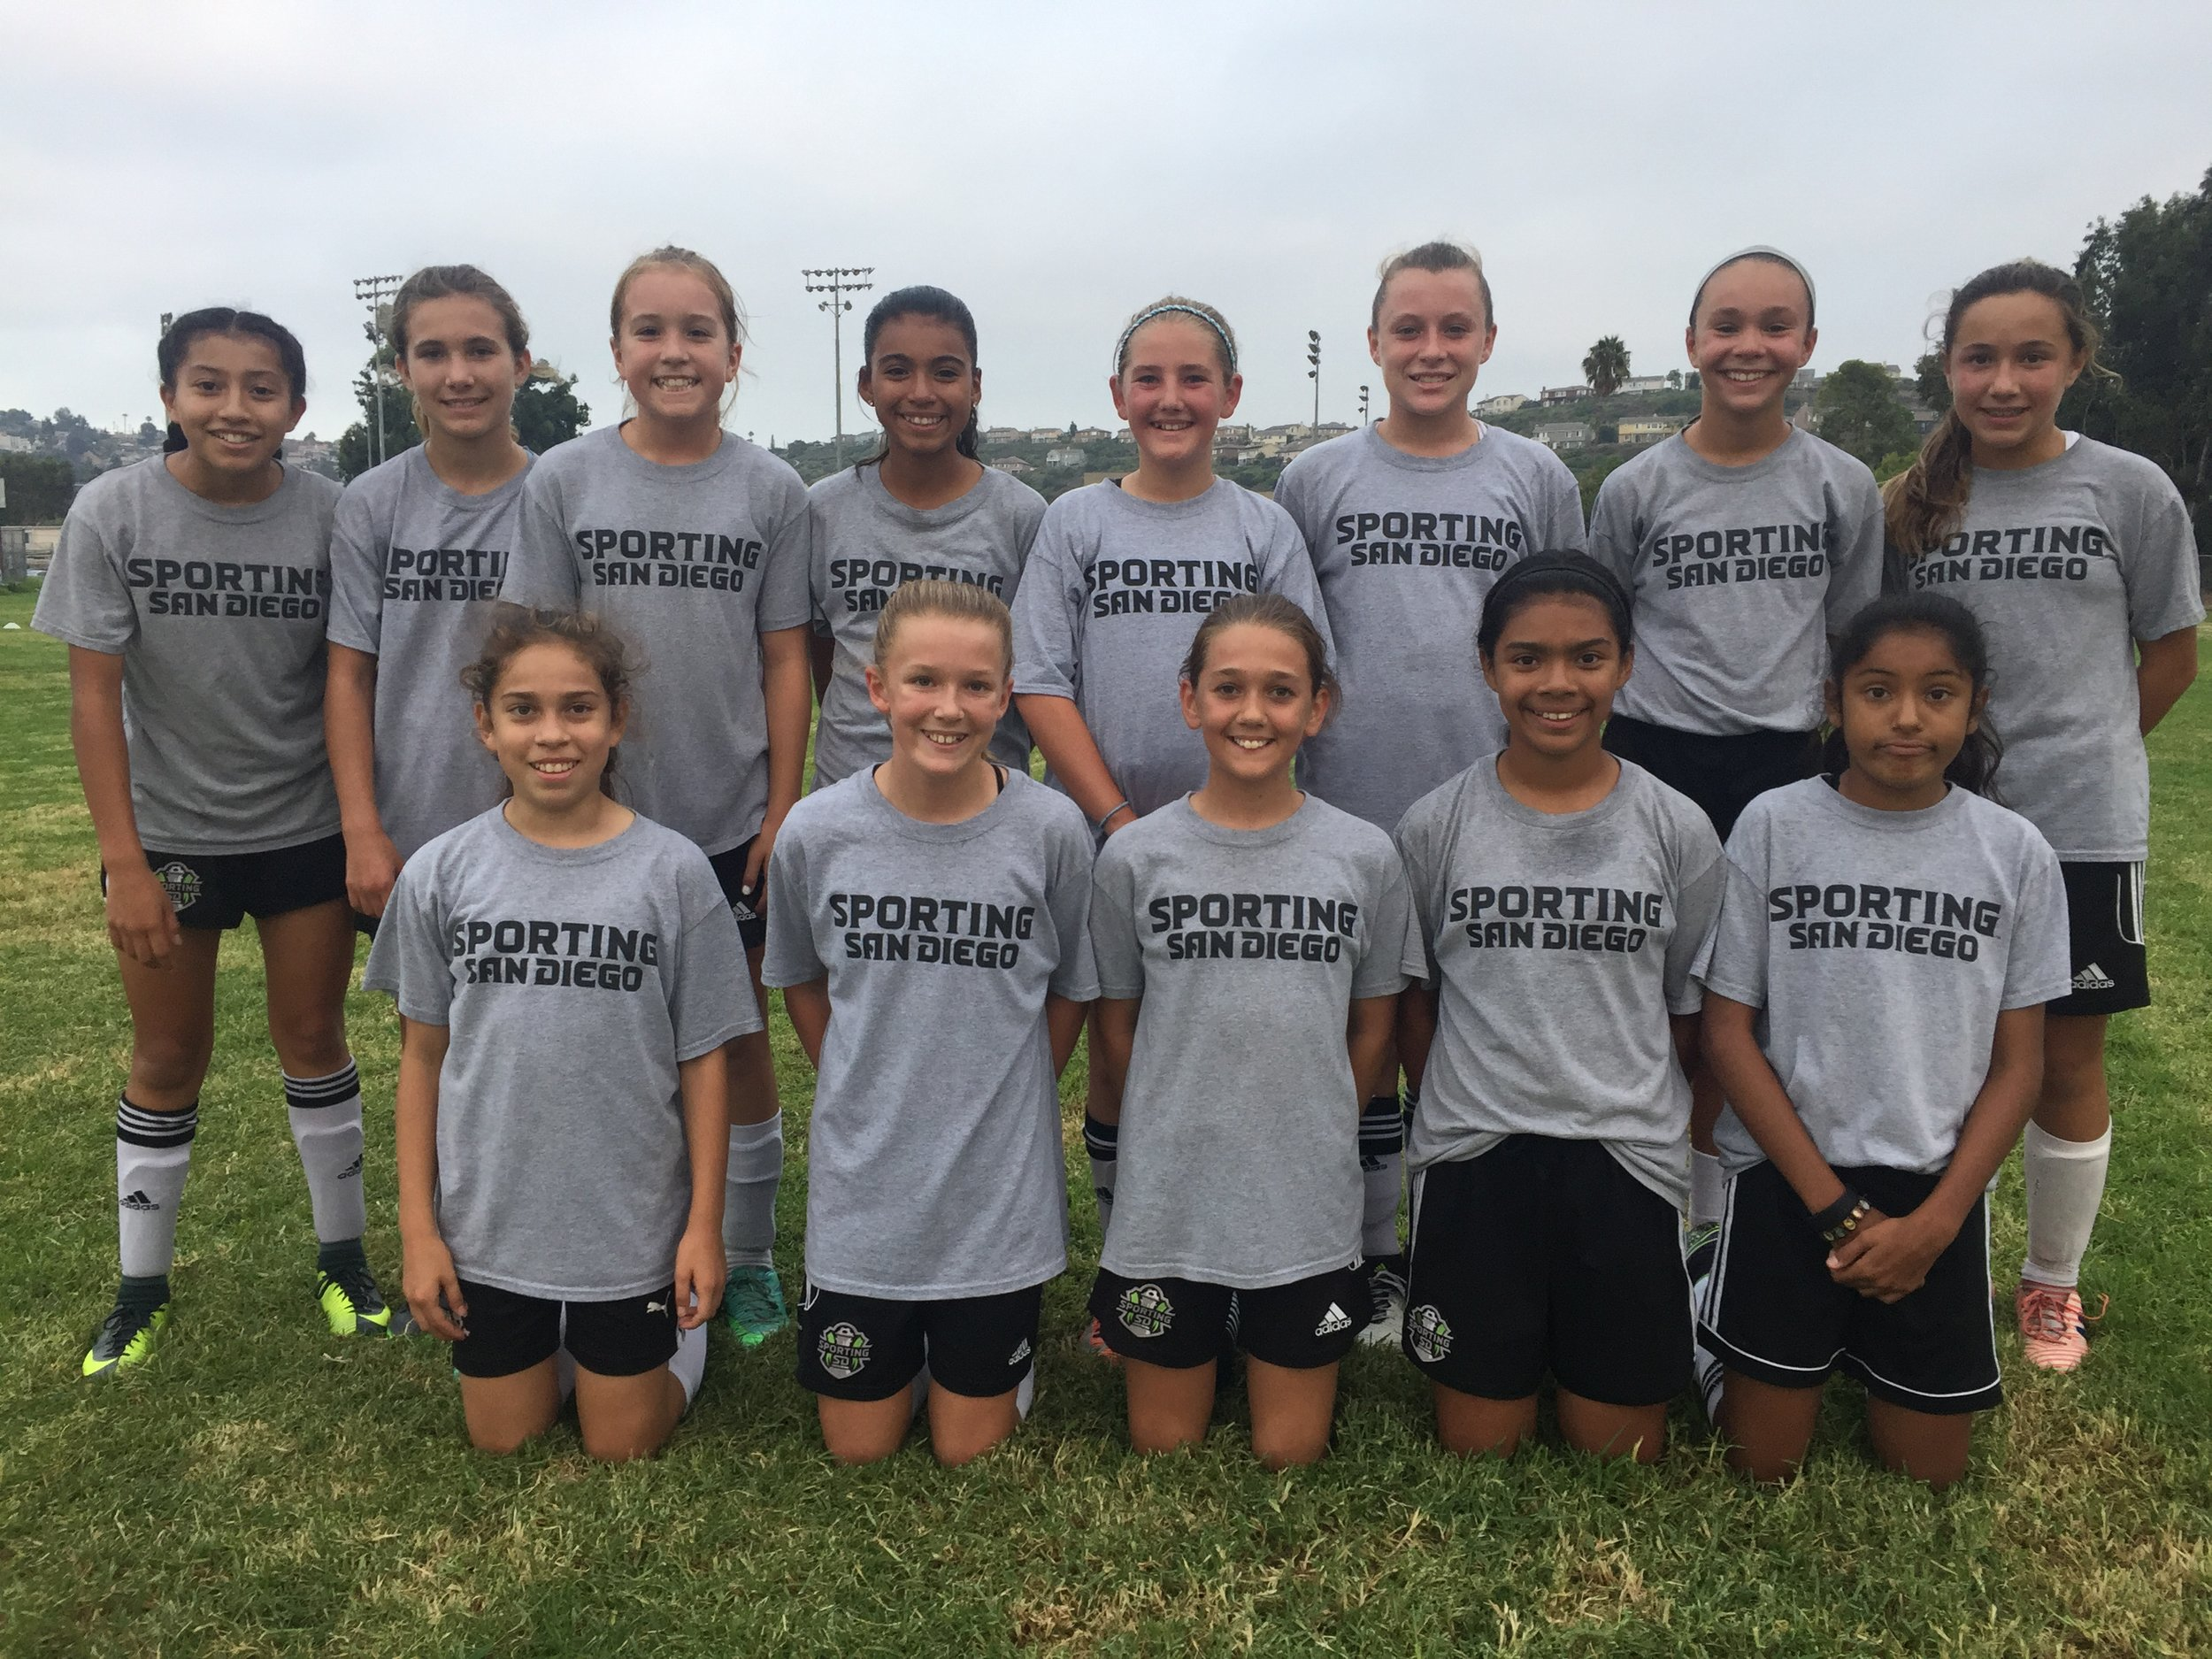 It's been a rewarding start for the Sporting 2005 girls in 2017. With strong showings at the West Coast FC and Copa at Del Mar Tournaments and a Liverpool Cup championship, the girls have faced top competition head on. The summer has also featured a visit to the University of San Diego pitch, quarterly player assessments, beach practices, leadership development lessons, video sessions, and of course, pool parties.  Committed offseason participation and key player additions have fueled advancement. Coaches Neil Saffer and Anthony Saffer have implemented a two-year emphasis on tactical development after building a solid technical foundation. Each training session is built on competition. The team's goal is to continue developing into a top team in Cal South in a family-friendly atmosphere.